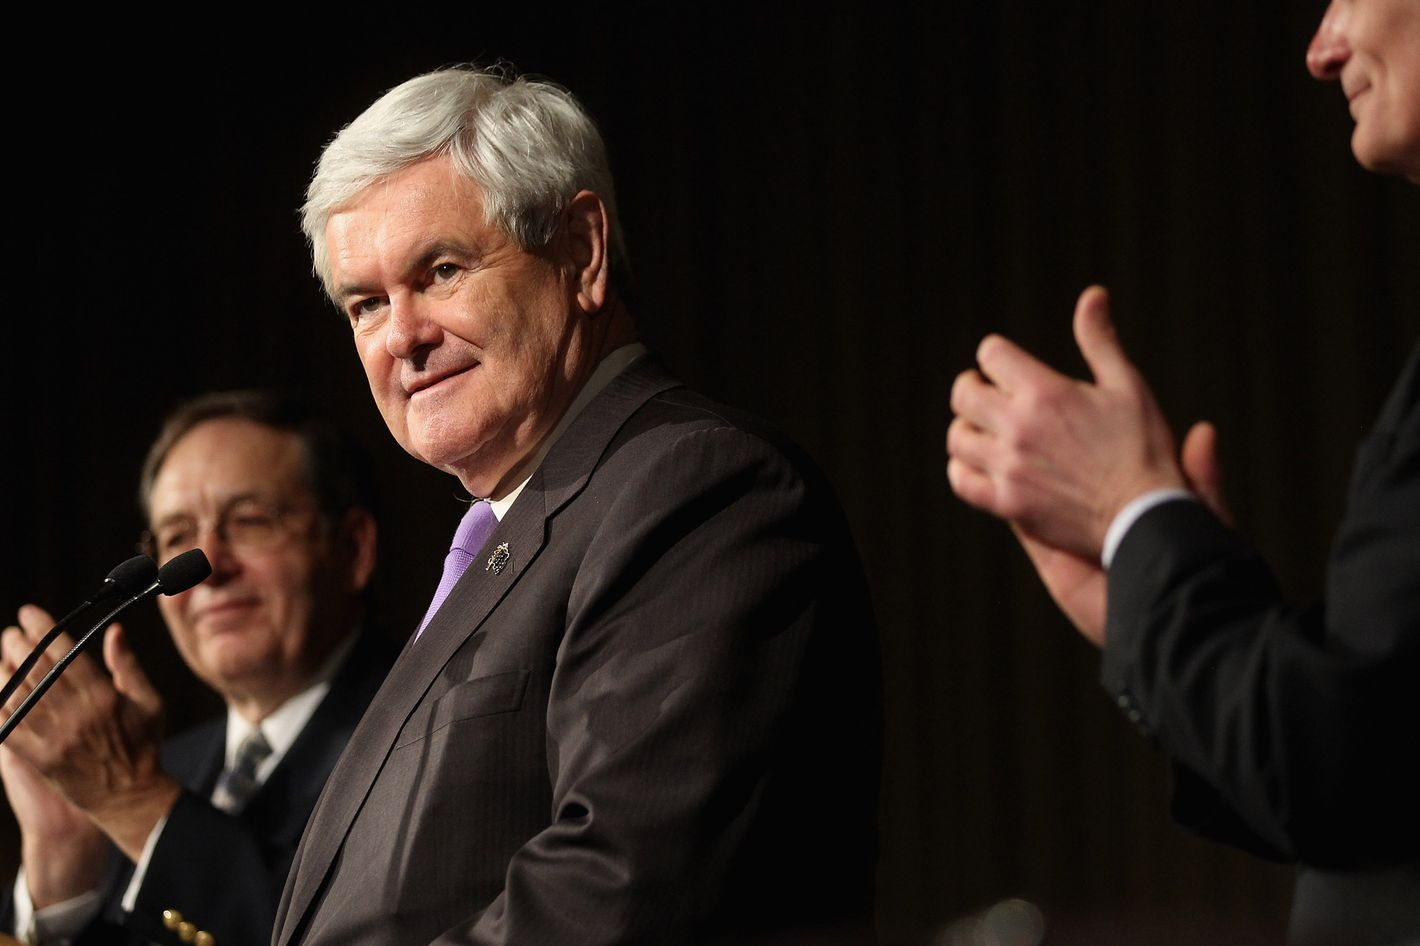 Republican presidential candidate, former U.S. Speaker of the House Newt Gingrich speaks at the Lincoln-Reagan Day Dinner at Bowling Green State University during a campaign stop on March 3, 2012 in Bowling Green, Ohio.